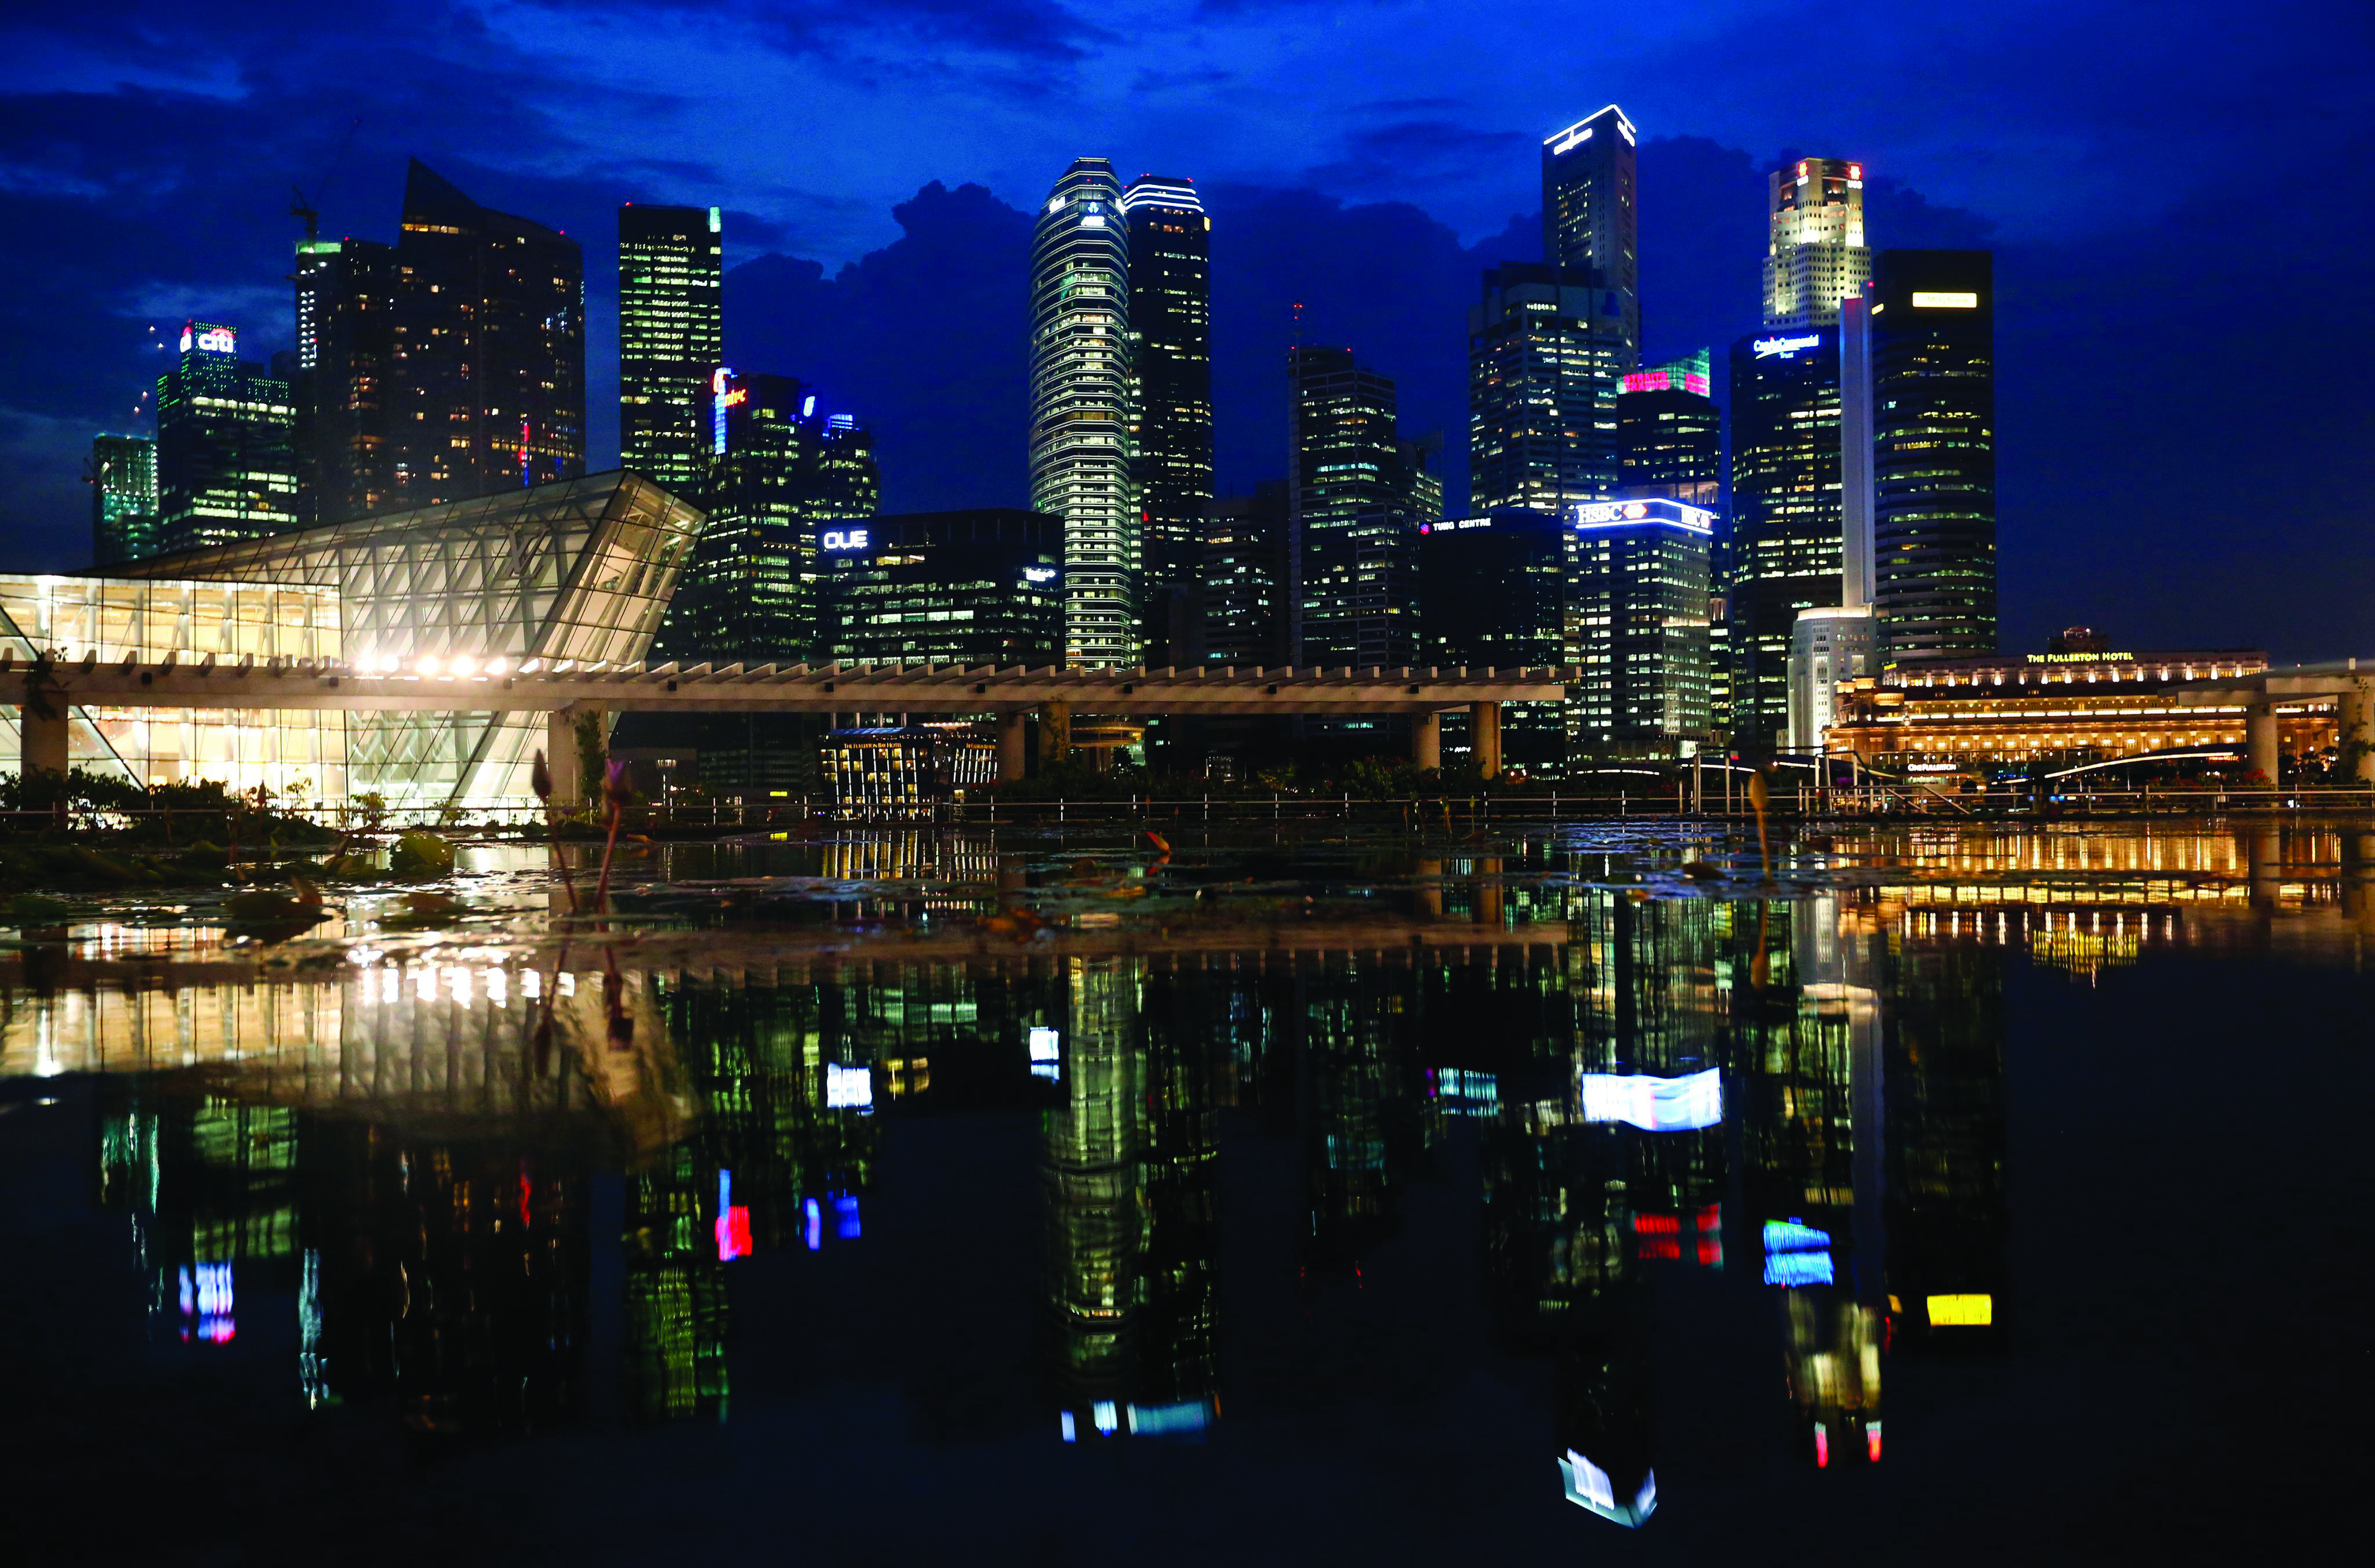 Peter France recommends Singapore